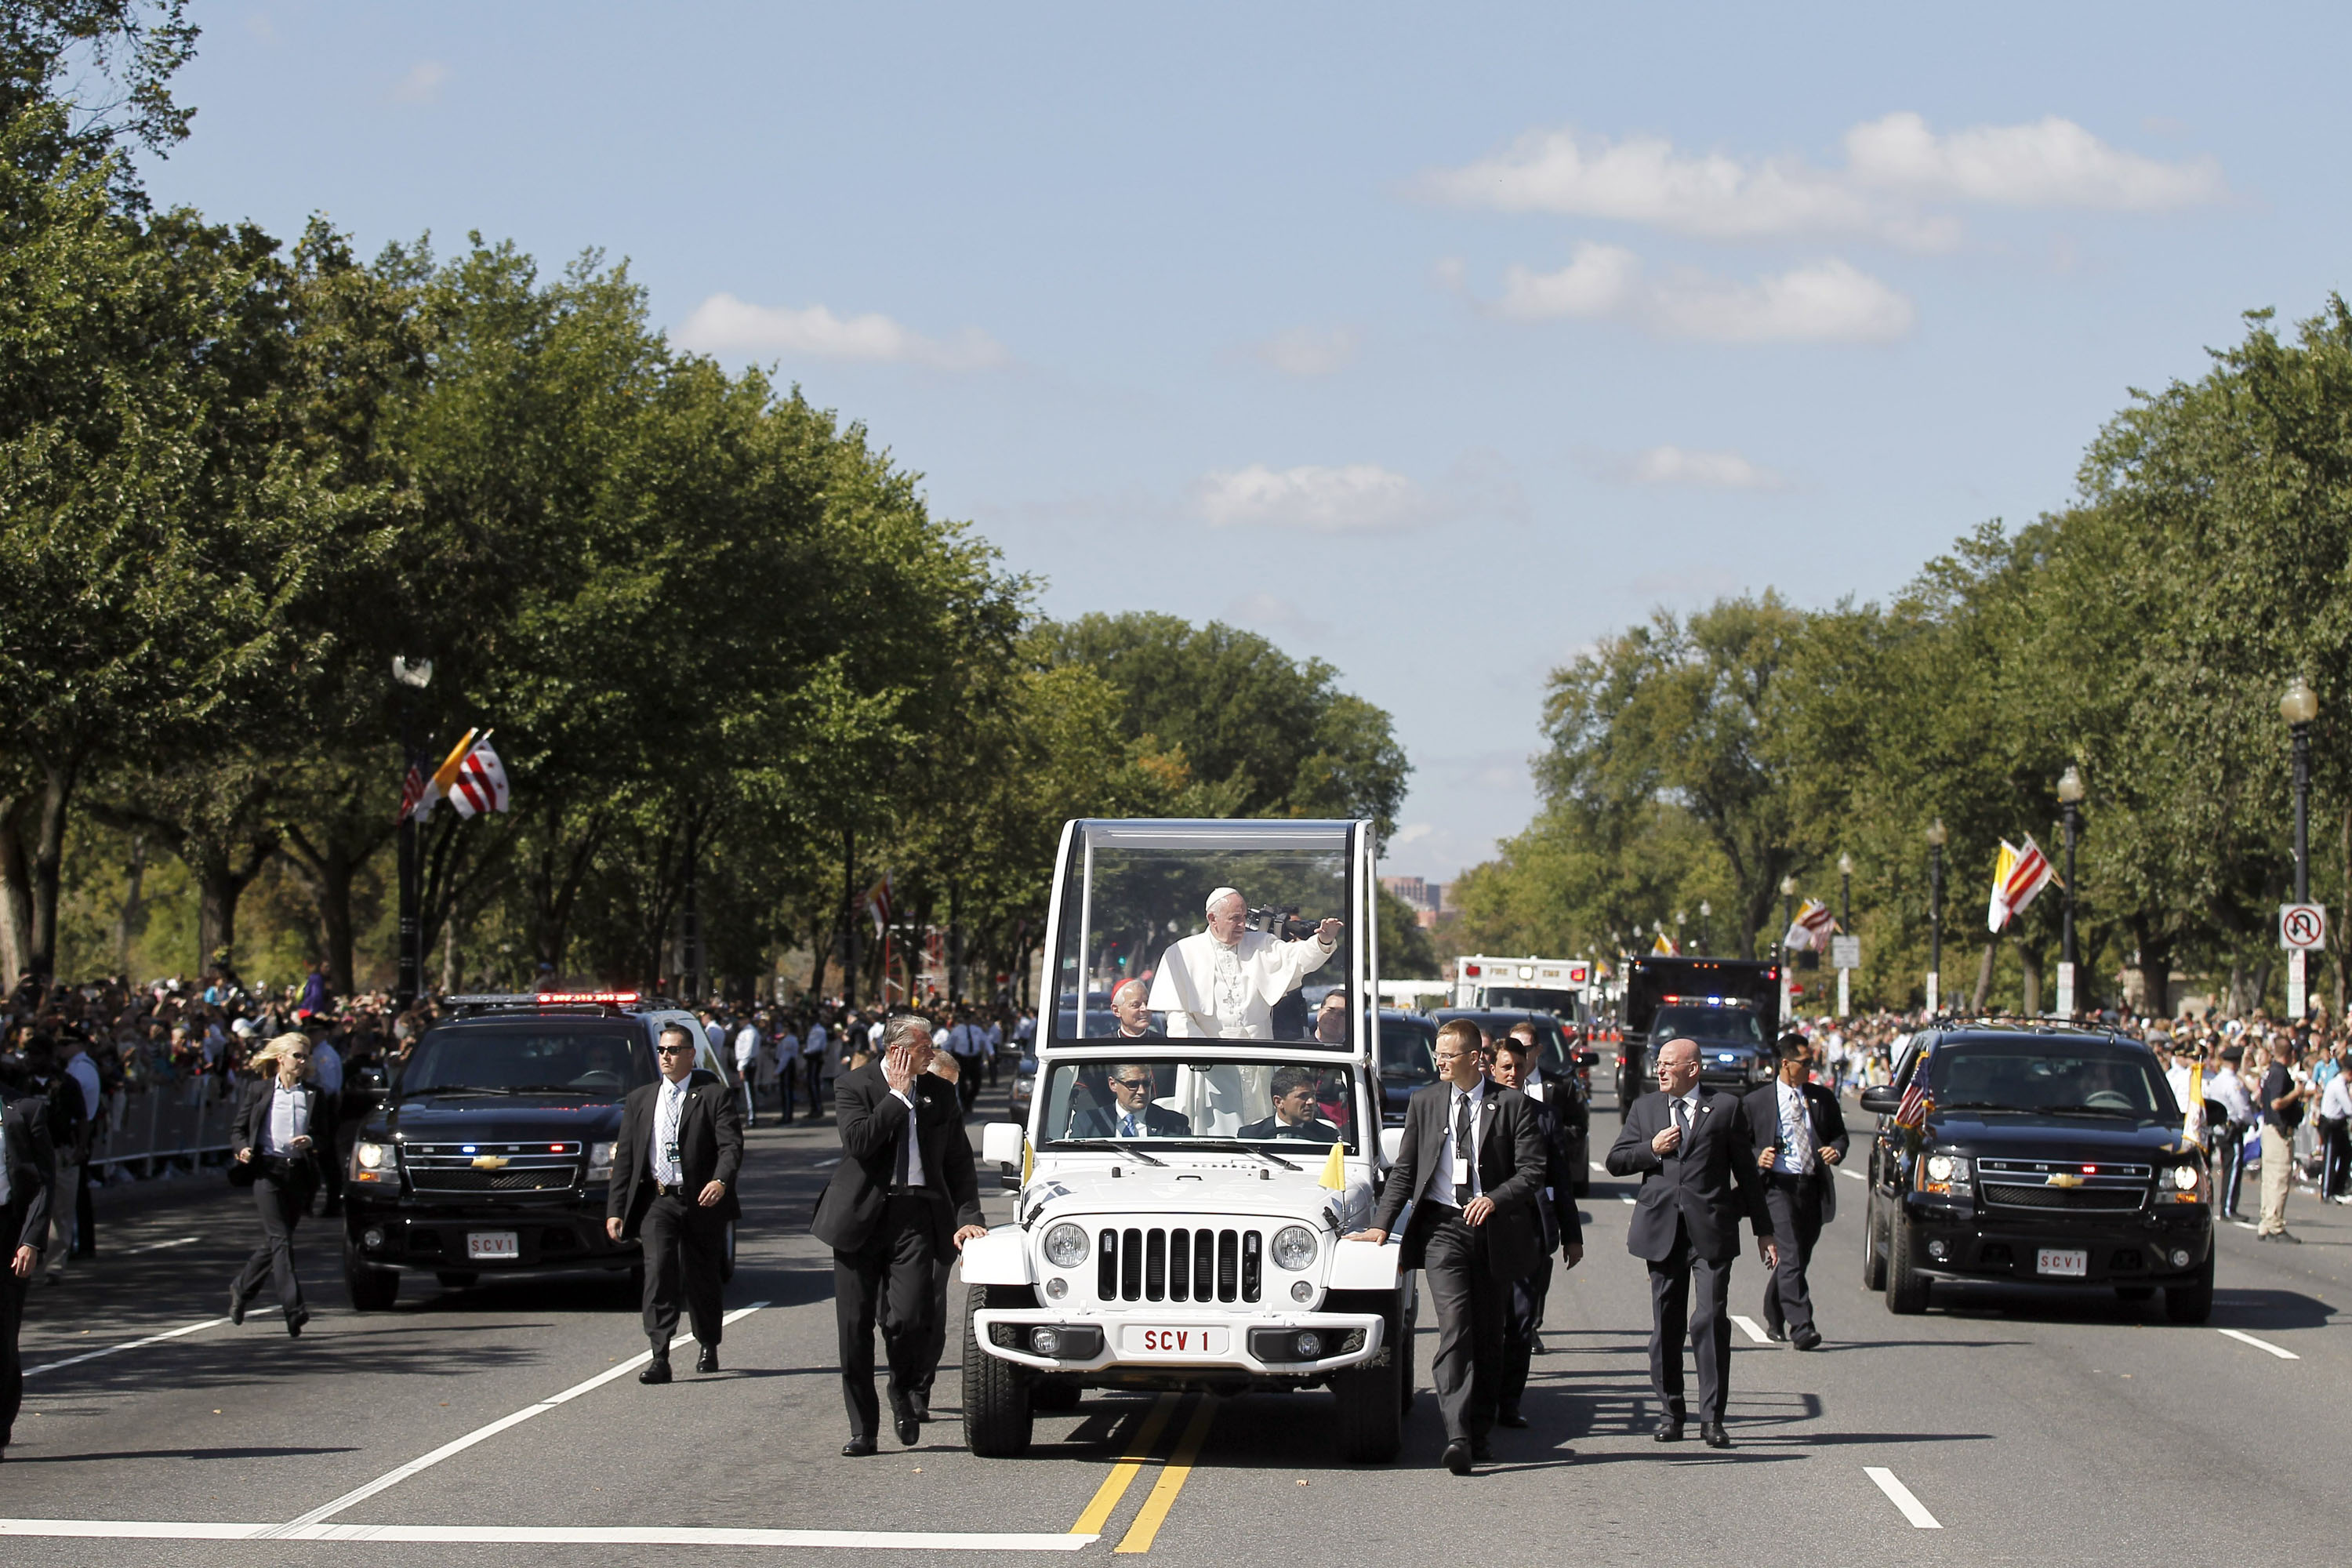 The papal parade down Washington's Constitution Avenue attracted crowds eager for a look at one man, and at history.